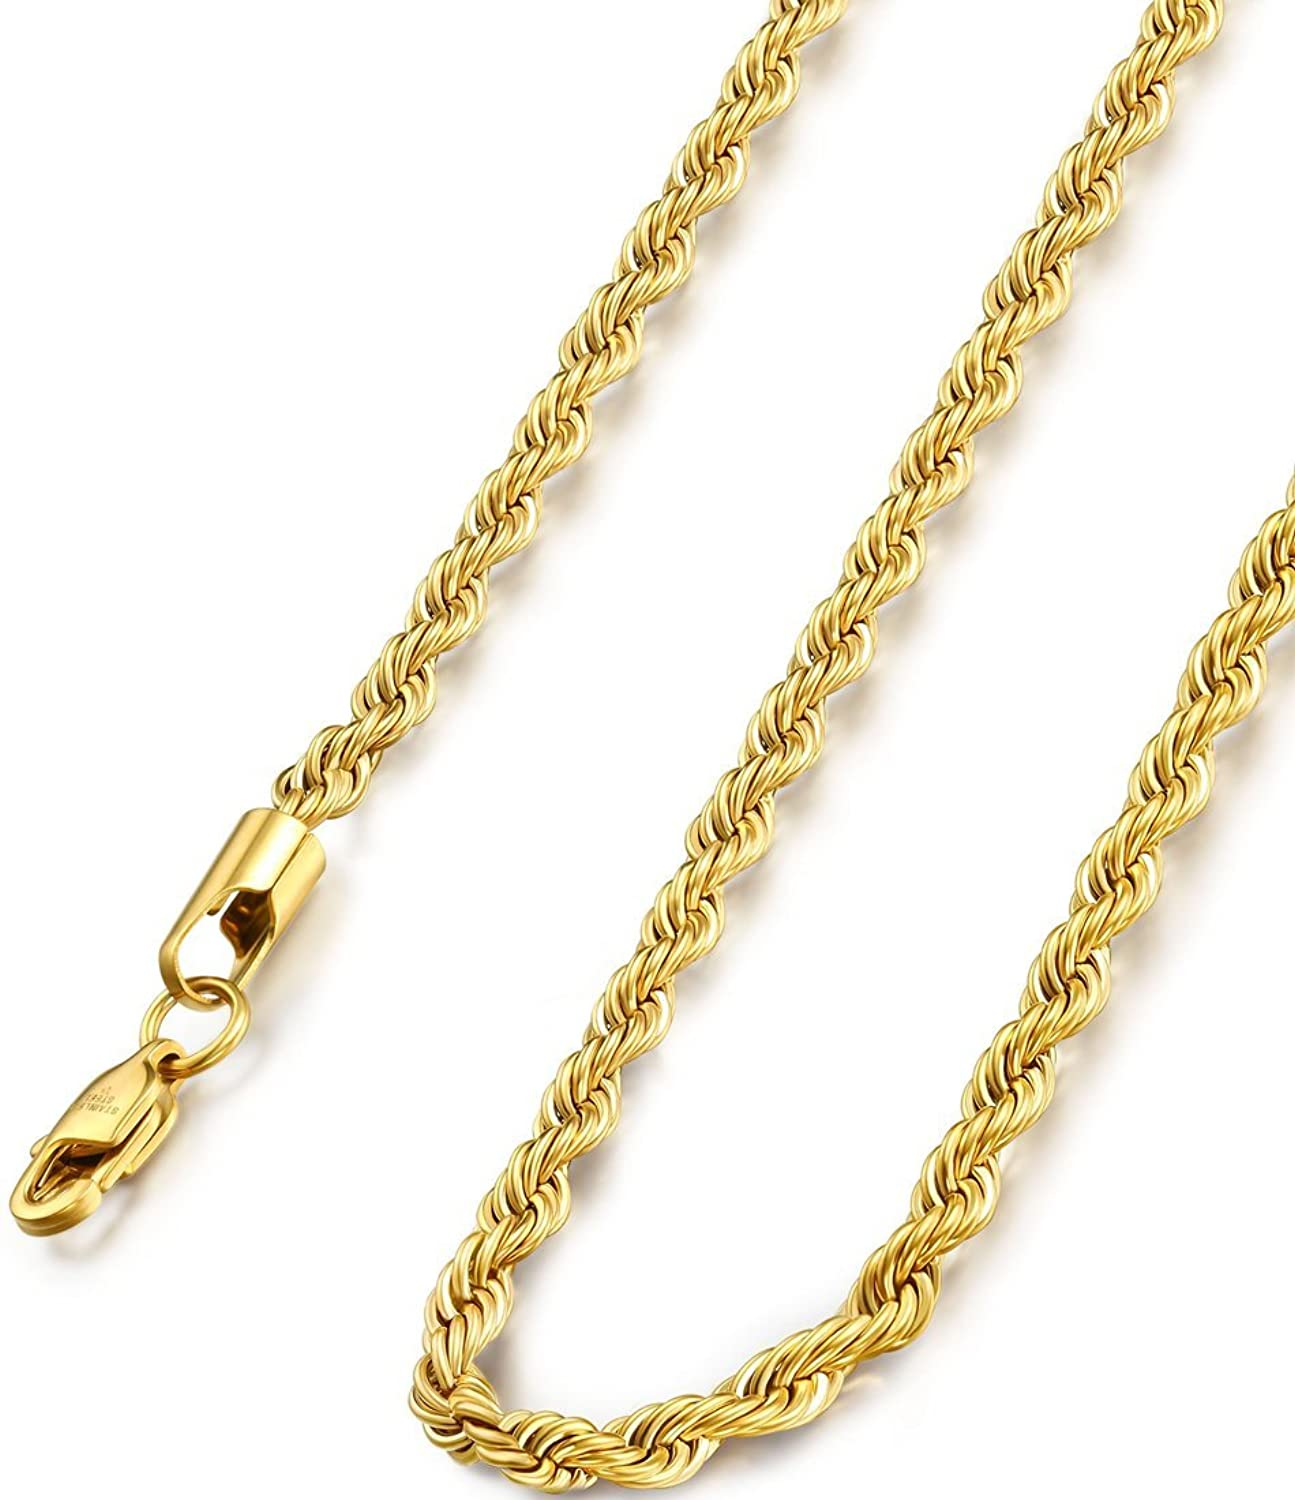 chains bracelet gold chain yellow solid l twisted rope anklet